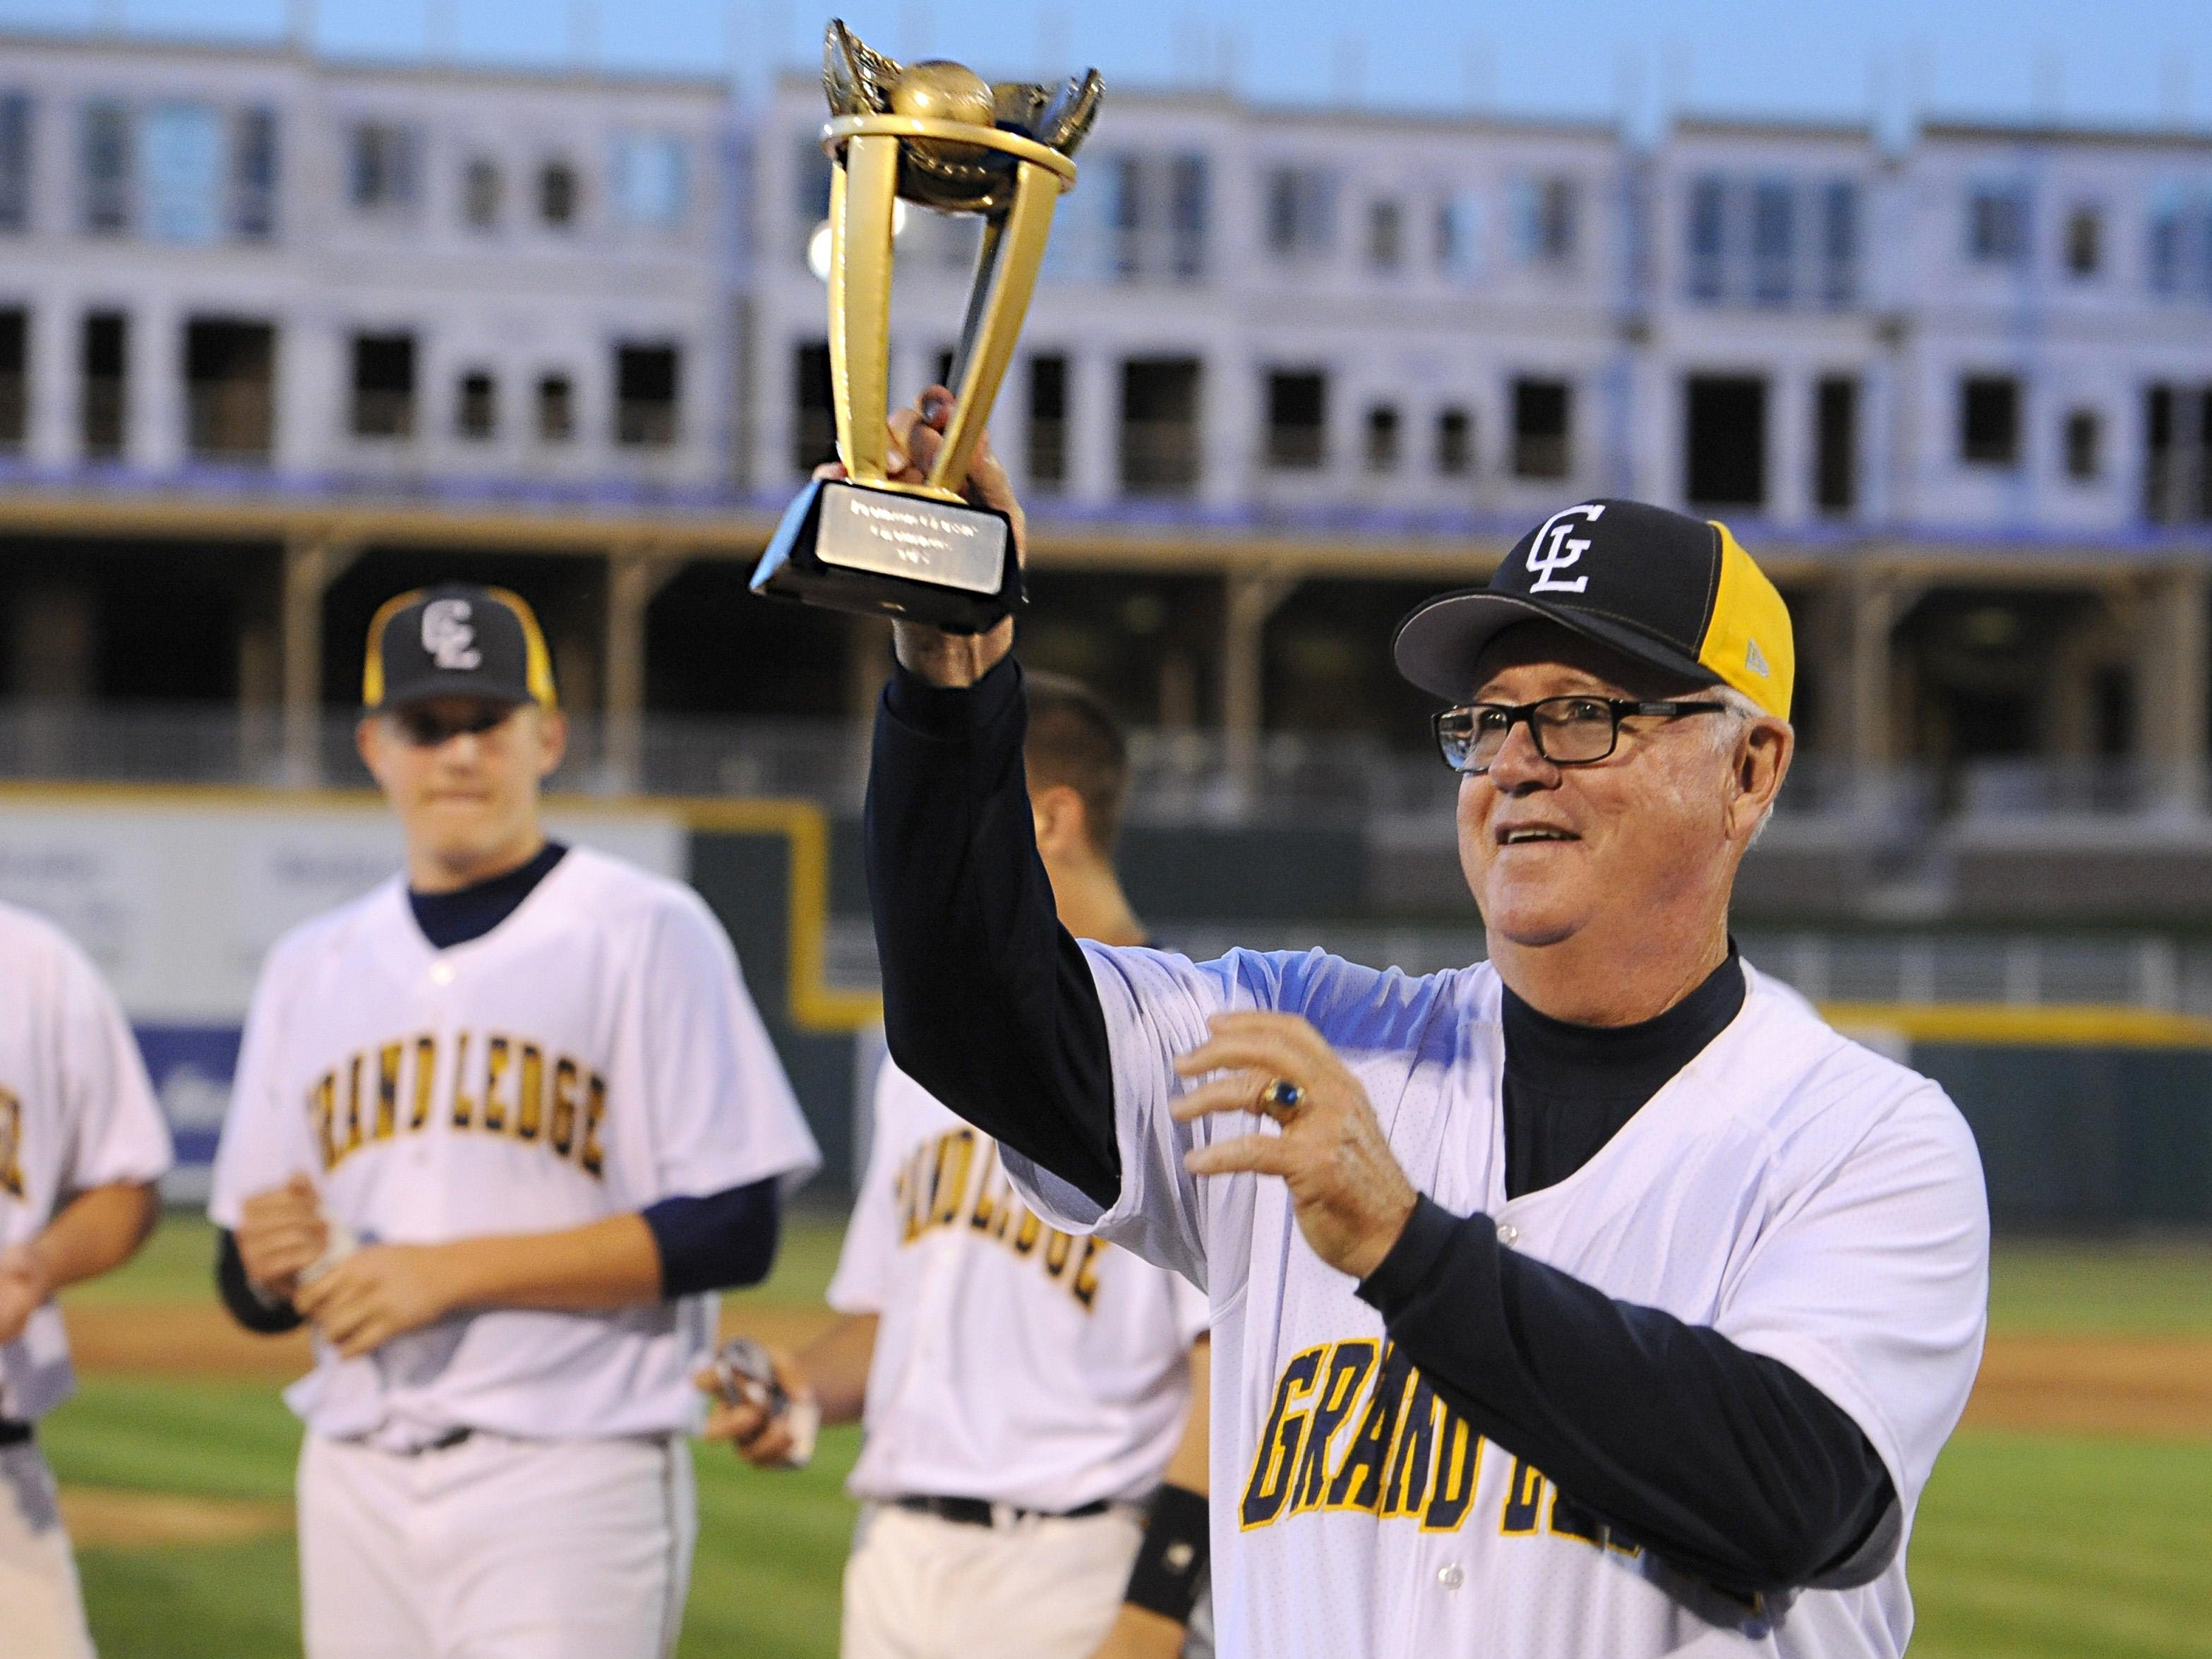 Grand Ledge head baseball coach Pat O'Keefe holds the Diamond Classic Championship trophy up to the the team's fans after the Comets' 4-1 win over St. Johns in the championship game.